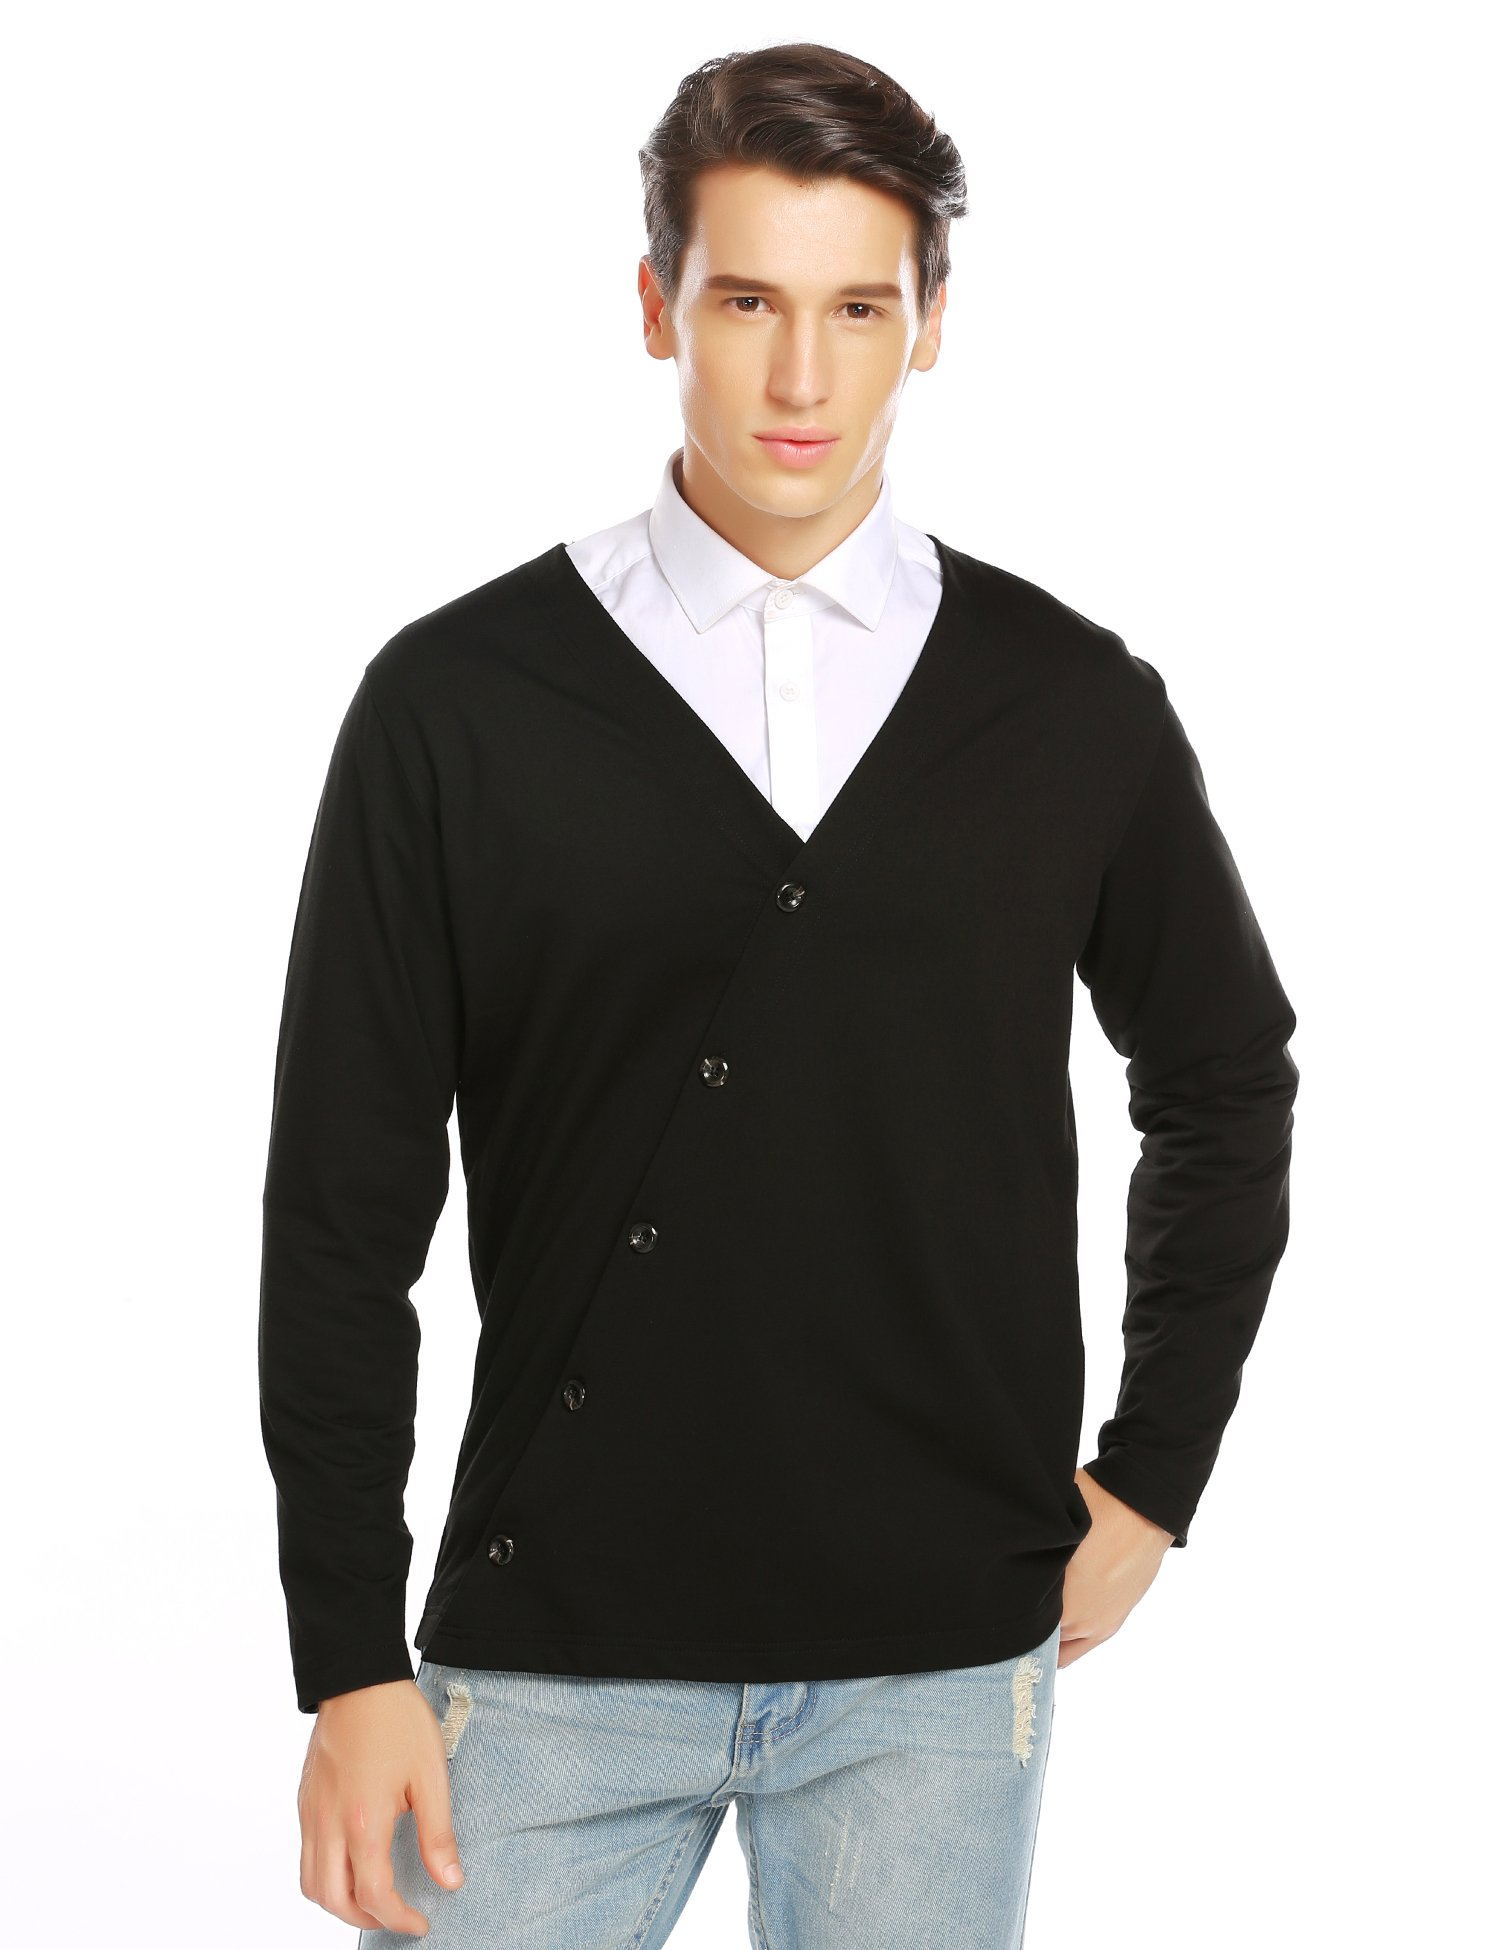 COOFANDY Men's Oblique Collar Button Front Casual Stylish Cardigan